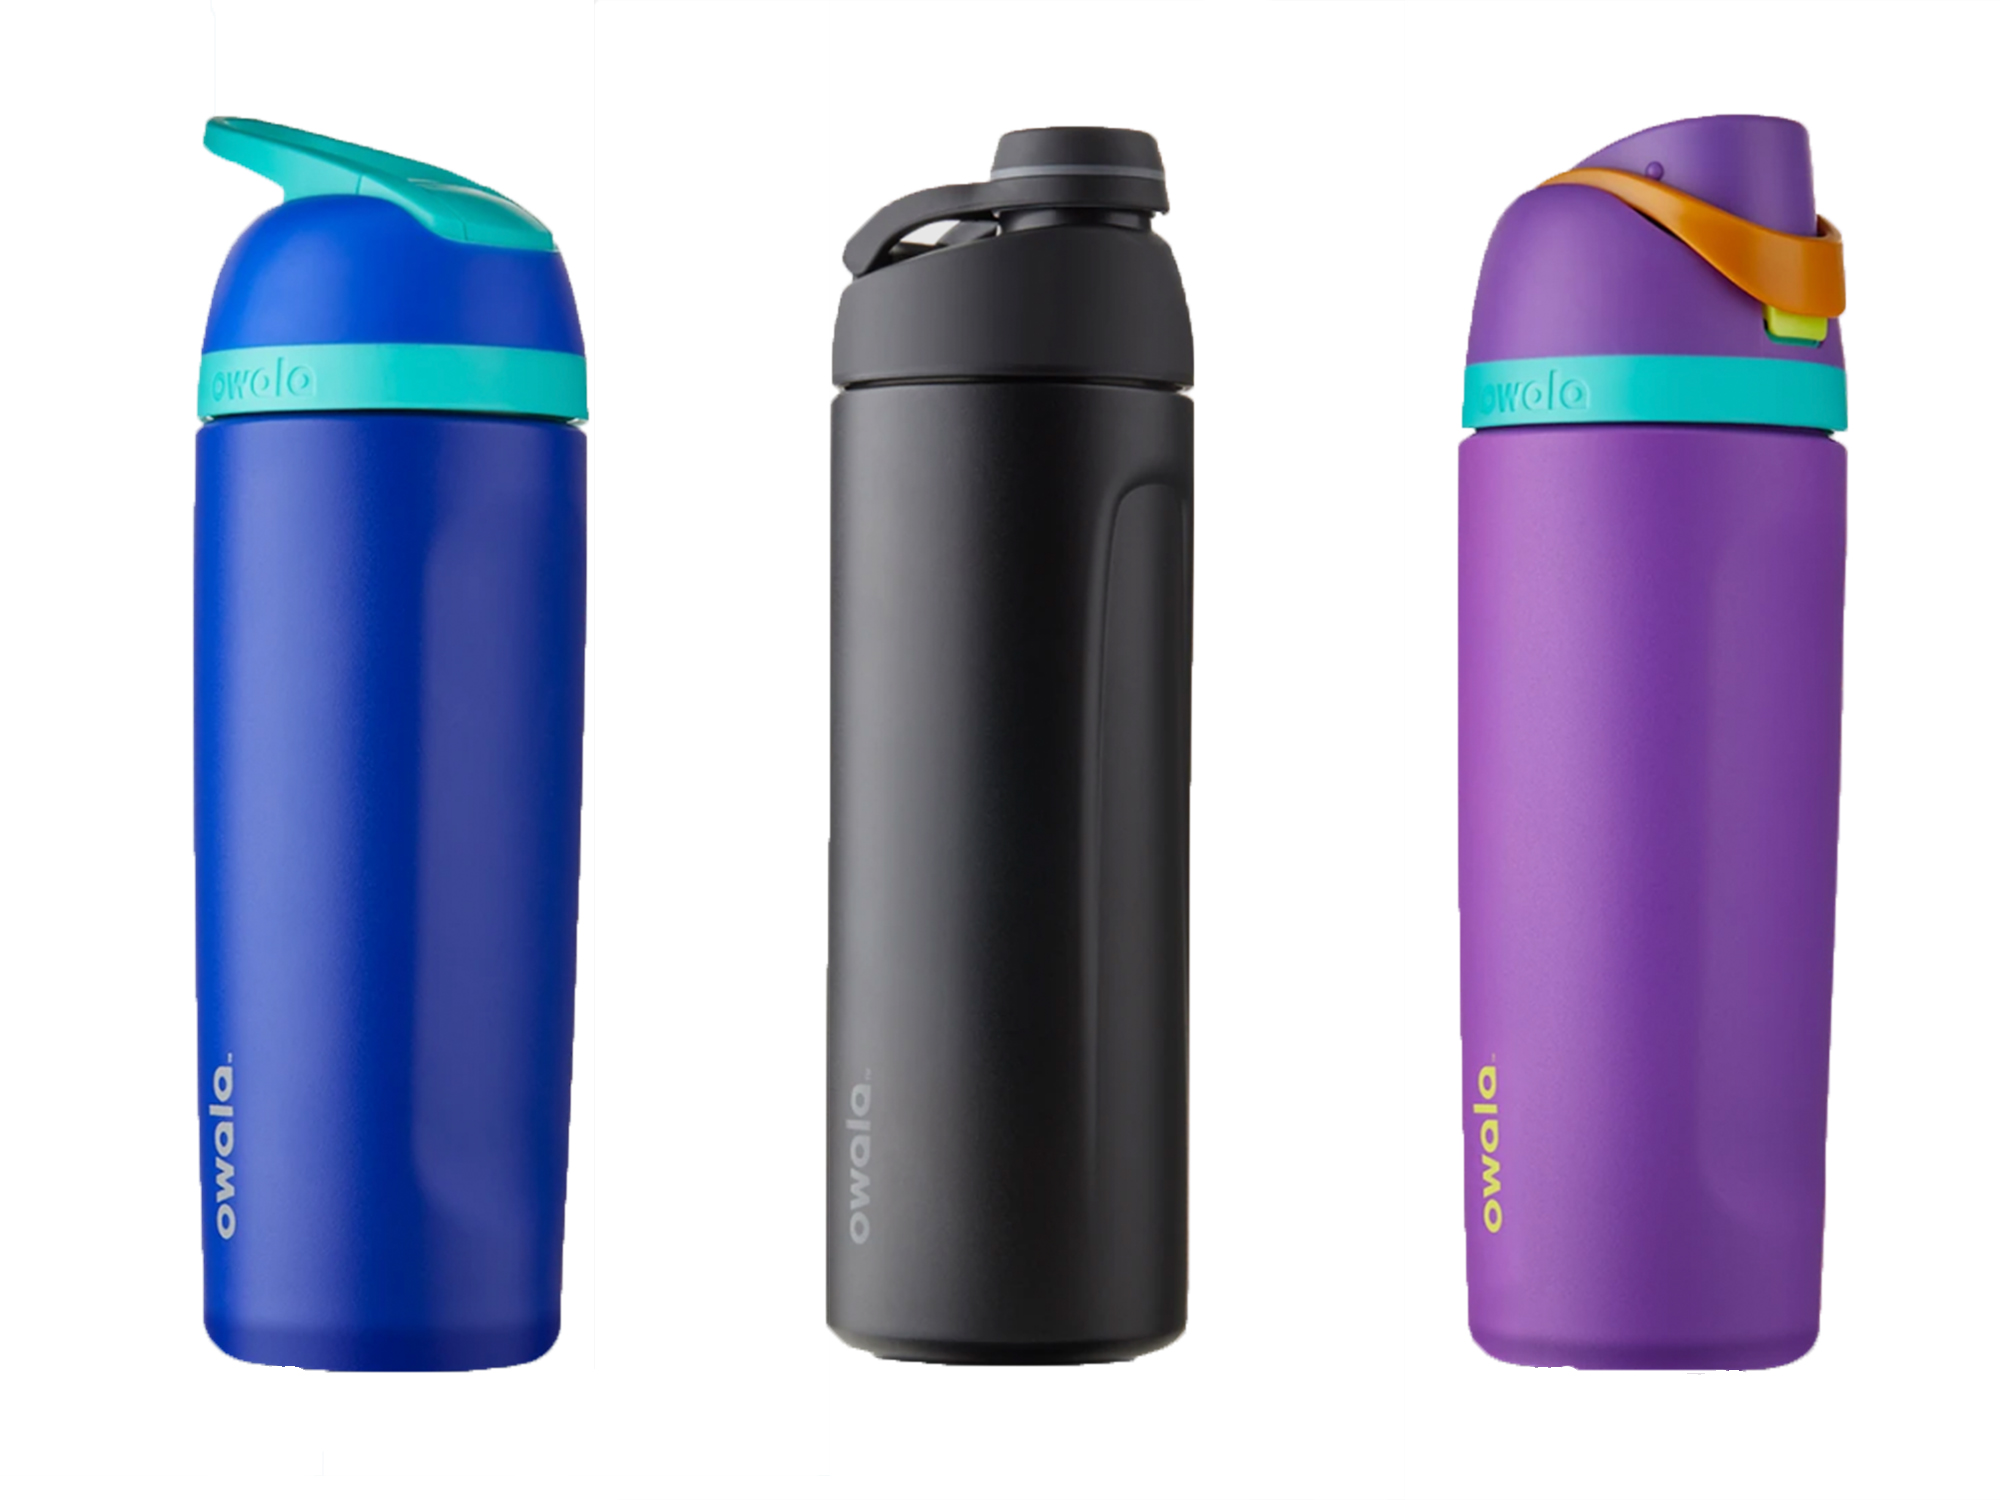 Owala water bottles in three colors and cap styles against white background